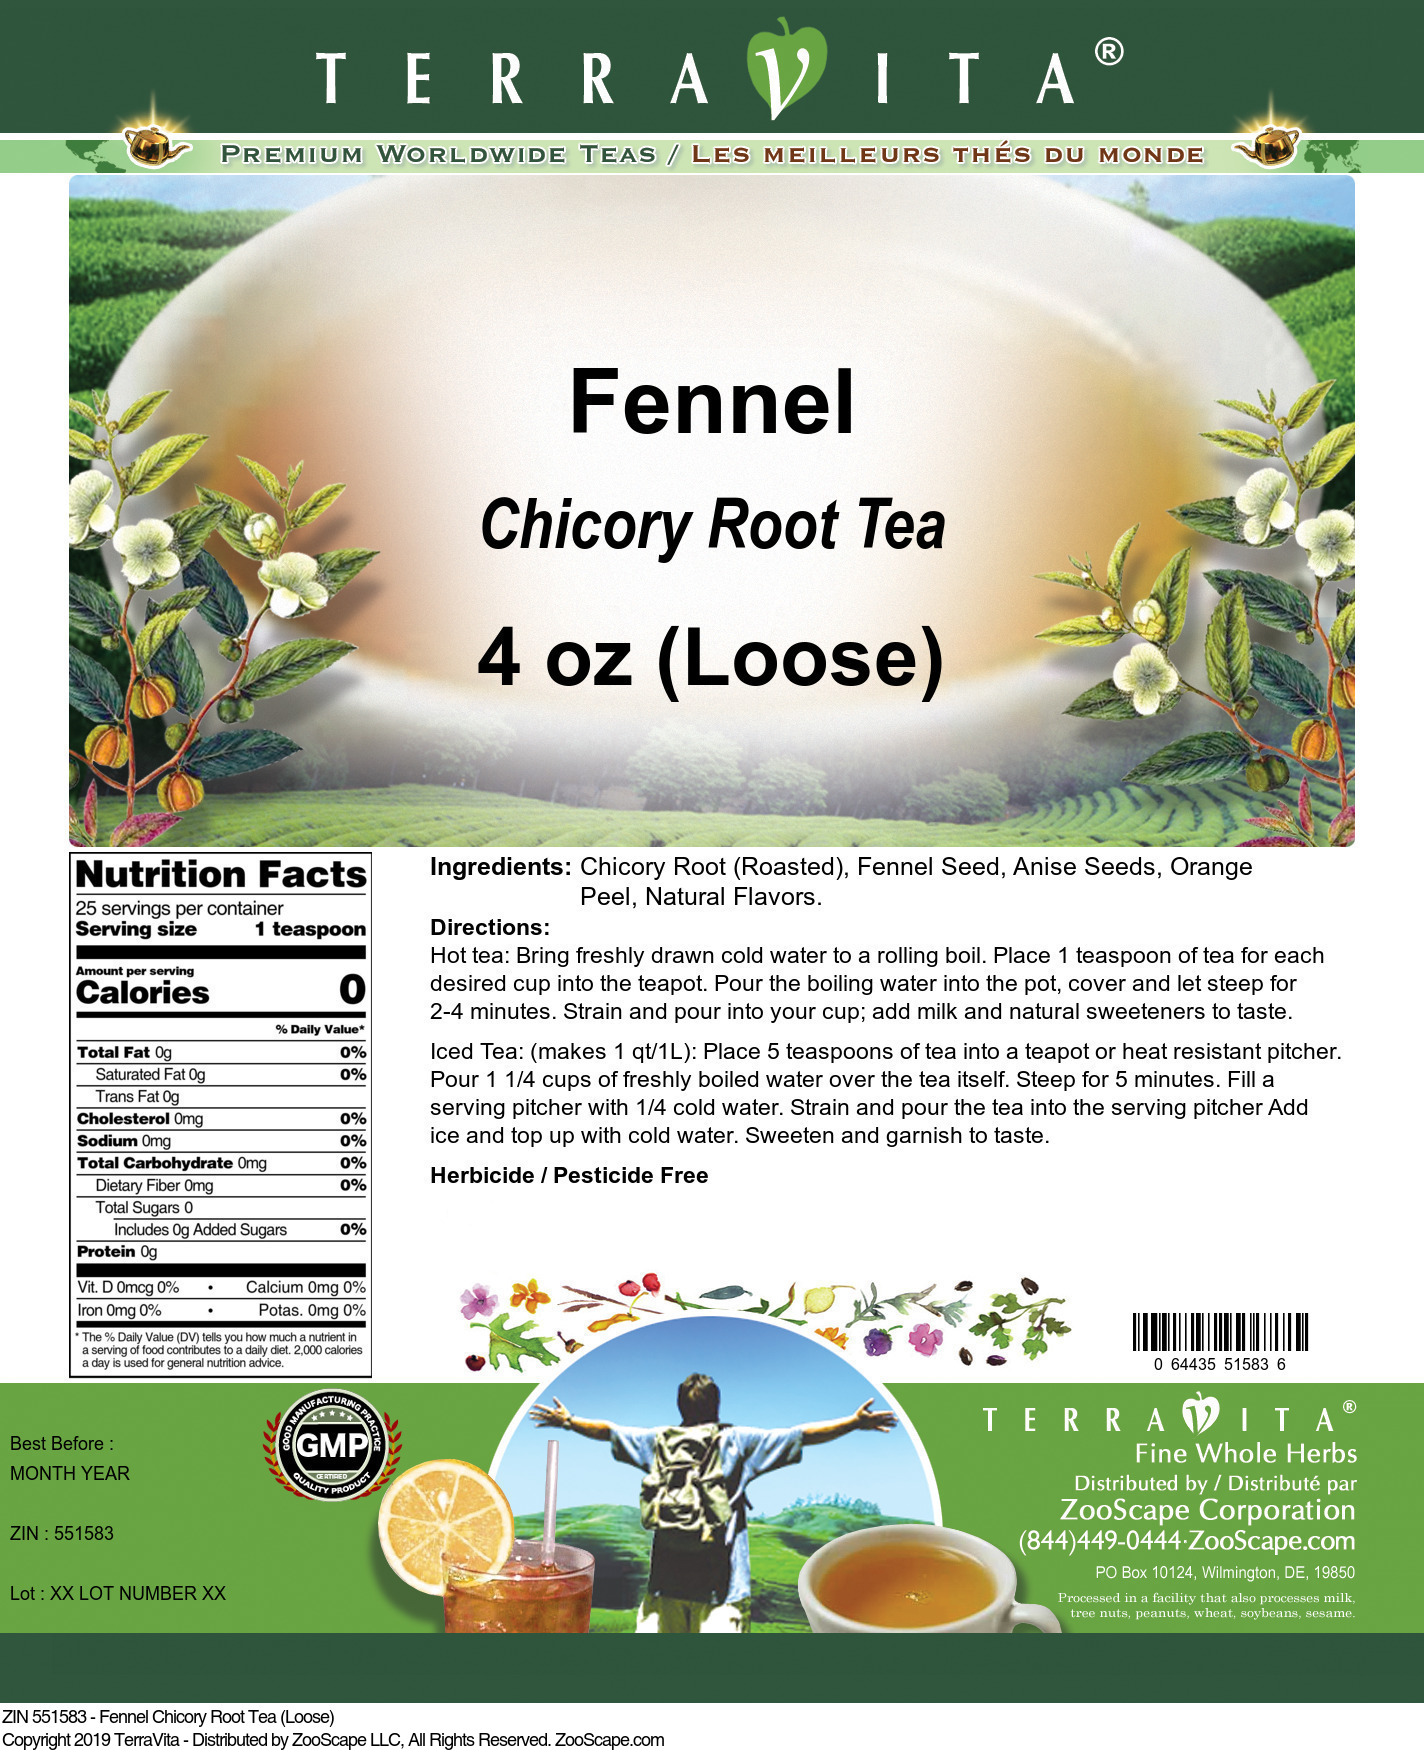 Fennel Chicory Root